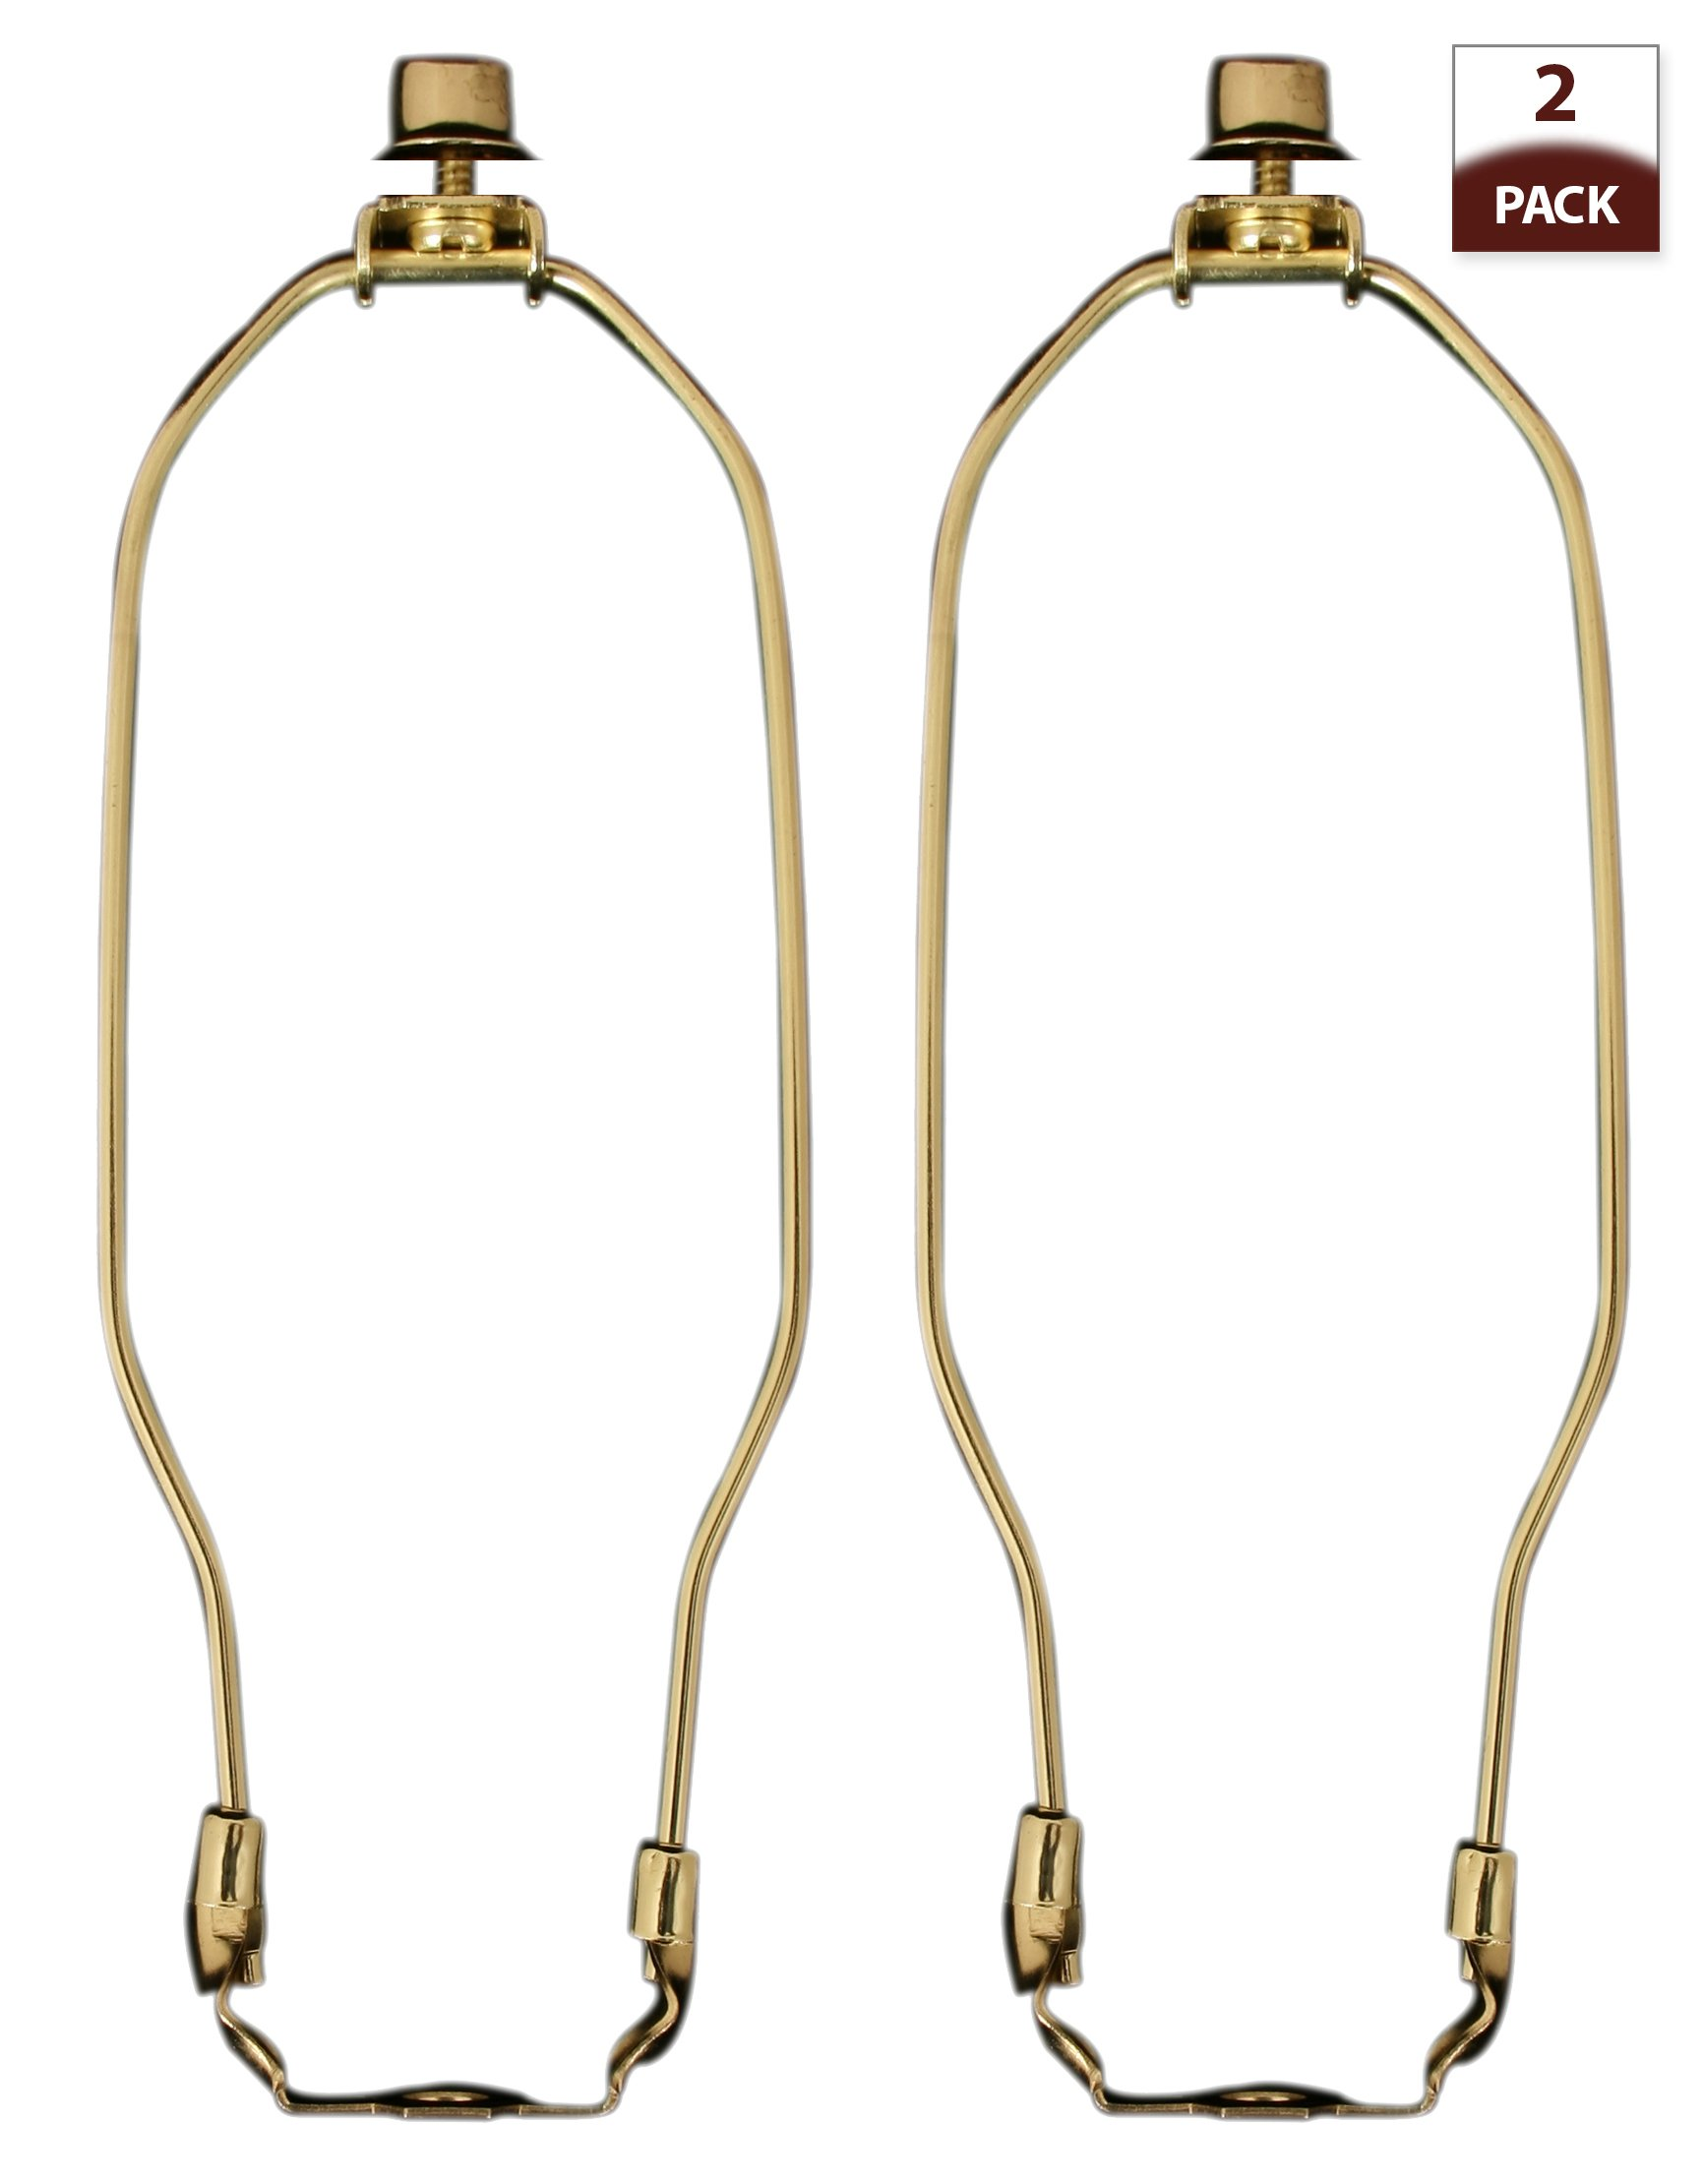 Royal Designs 7.5'' Lamp Harp, Finial and Lamp Harp Holder Set, Polished Brass, More Sizes Available (HA-1002-7.5BR-2)